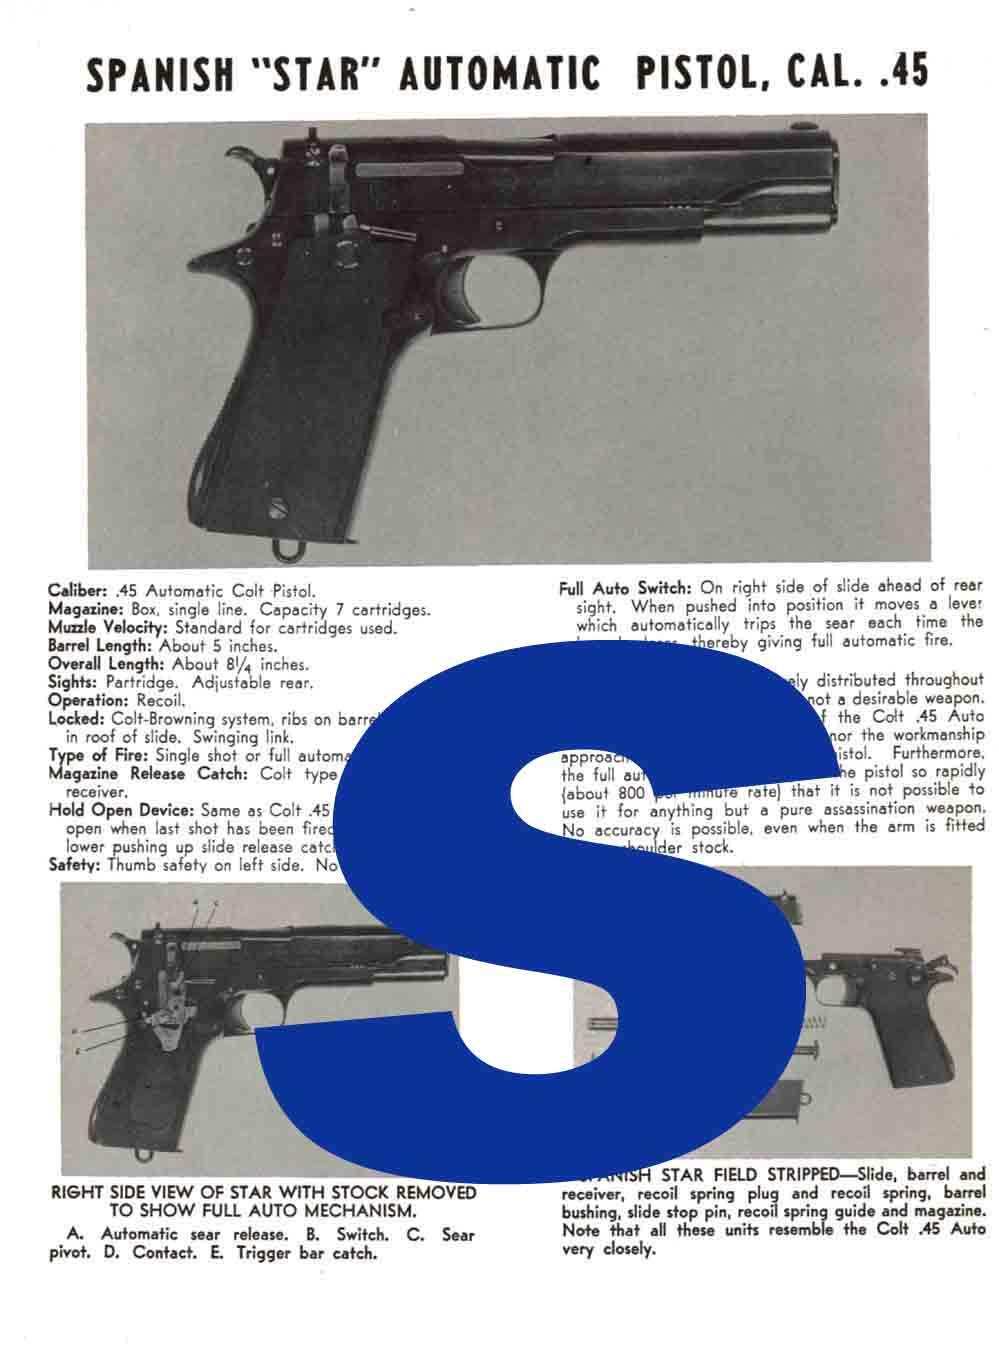 Star- Spanish Automatic Pistol .45 Cal